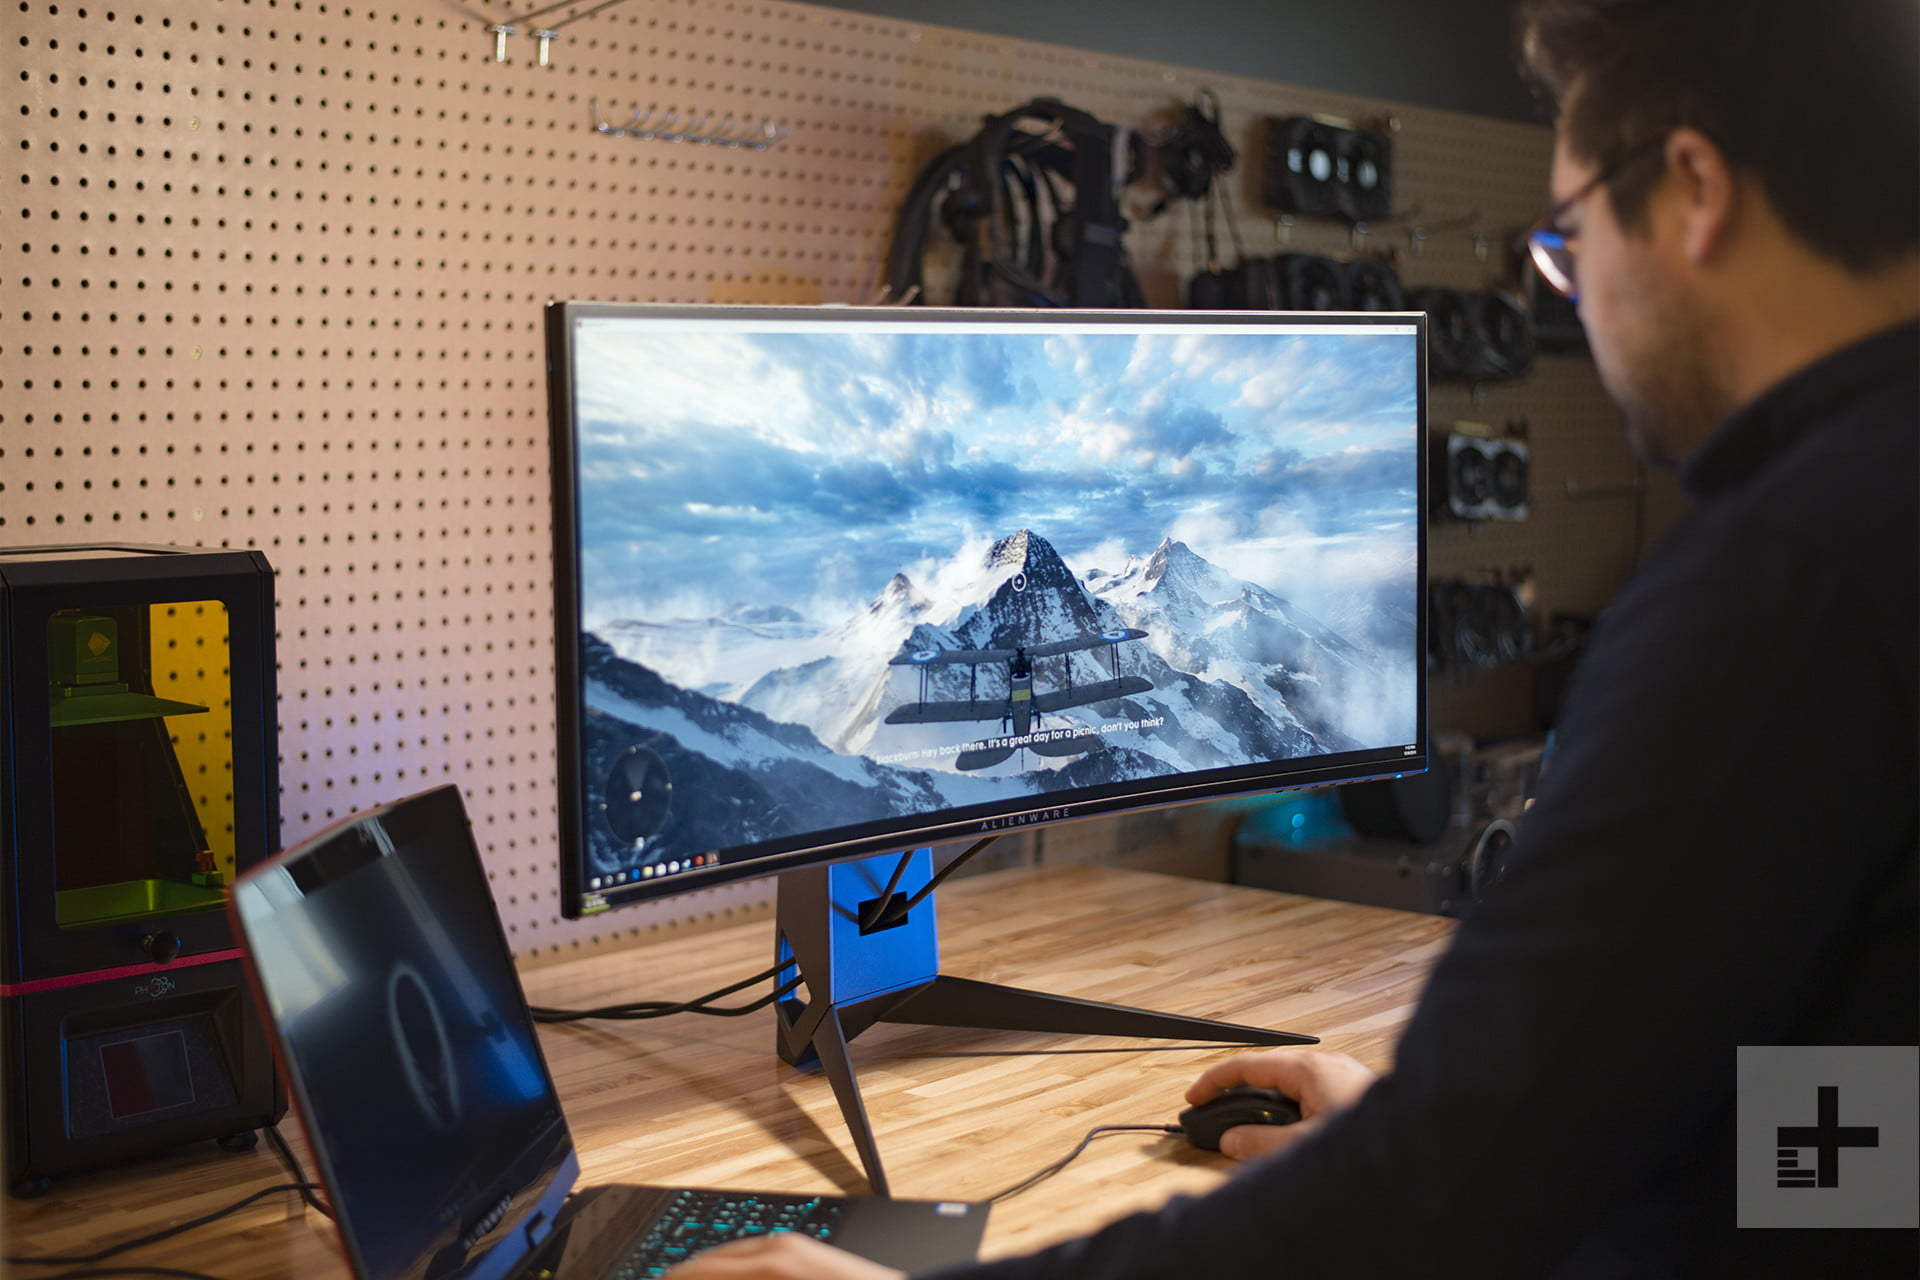 Best Gaming Monitor 2020 The Best Gaming Monitors for 2019: 144Hz, 4K, Budget, and More